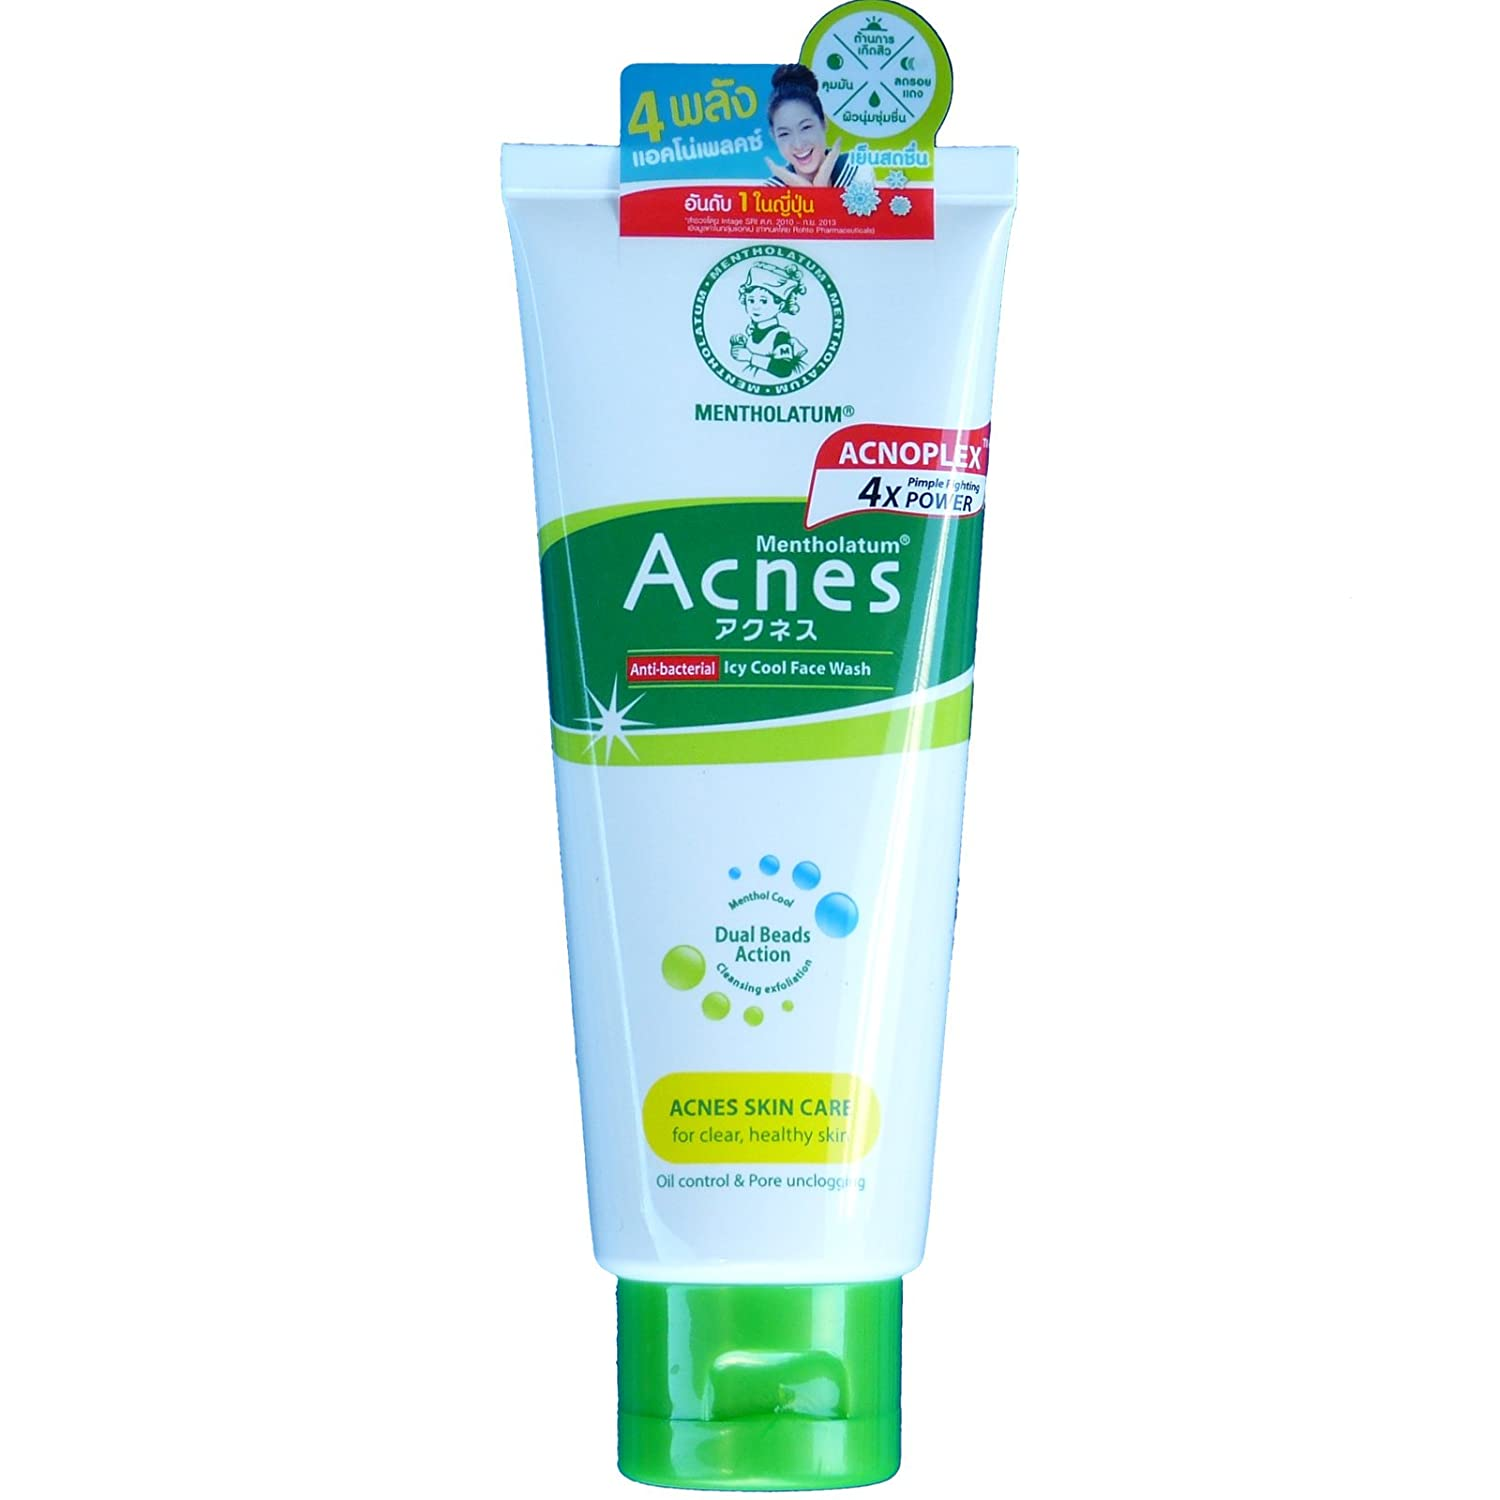 Mentholatum Acnes Icy Cool Face Wash Facial Cleanser Sealing Gel Scrub 100g Beauty